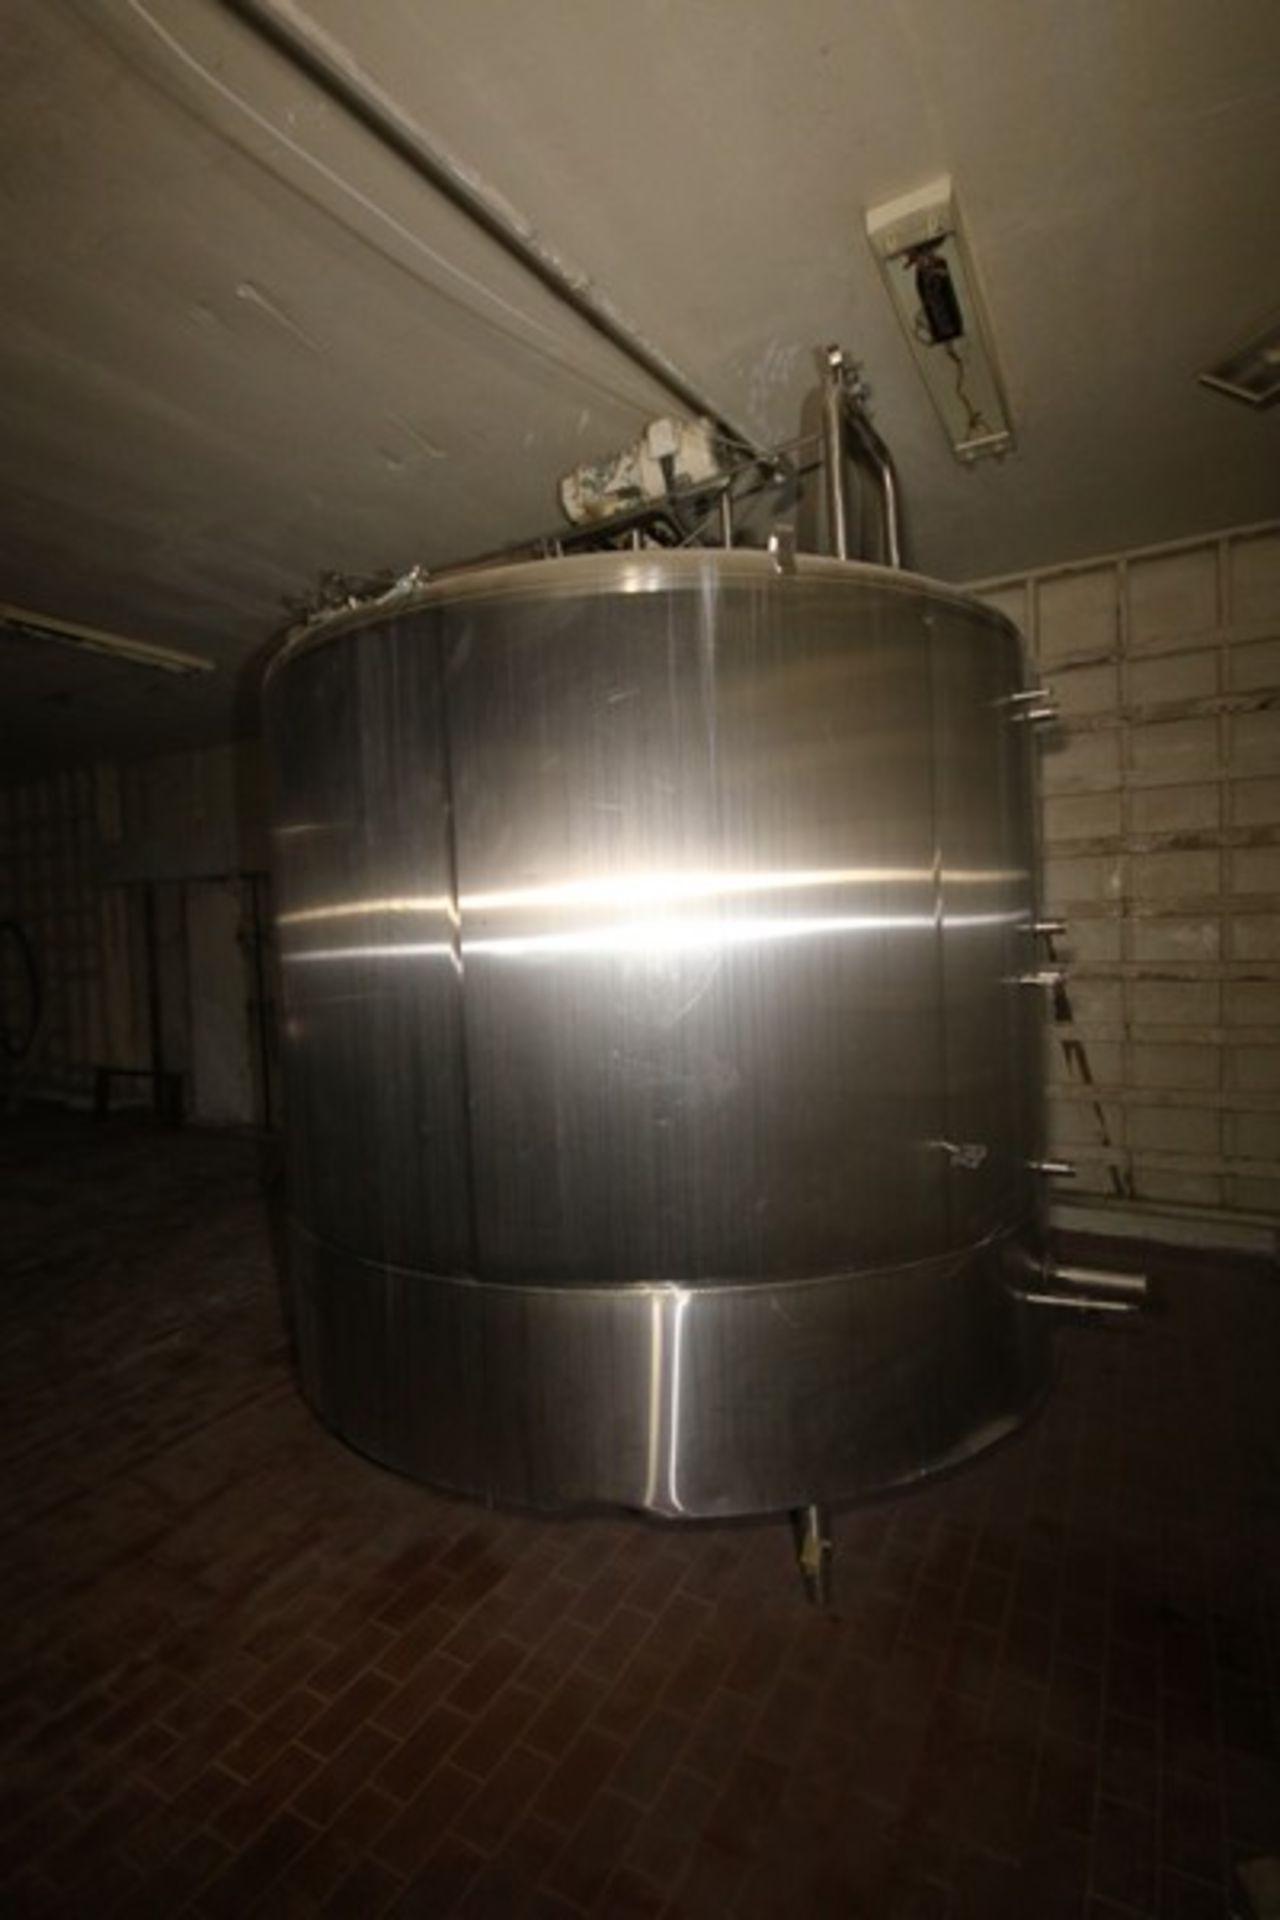 "Mueller Aprox. 2,000 Gal. S/S Processor, Processor Dims.: Aprox. 8' Diameter x 62"" Straight Side - Image 3 of 10"